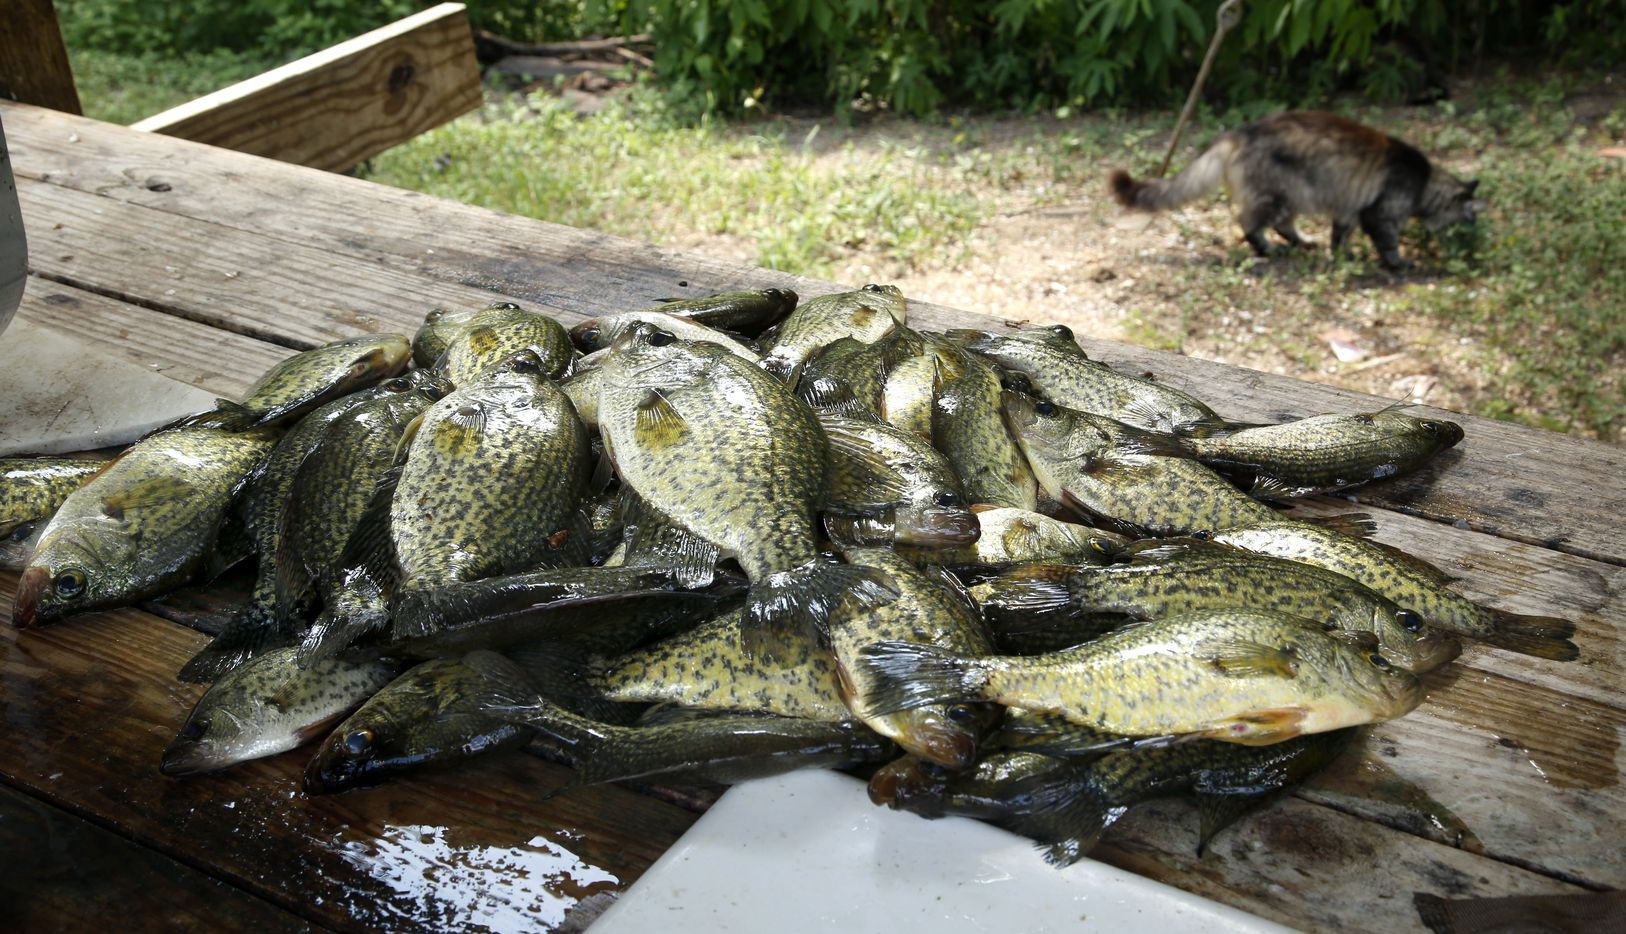 An early-morning haul of crappie lies on the cleaning table as a stray cat eats fish scraps at Johnson Ranch at Caddo Lake in Uncertain, Texas Tuesday June 26, 2018. Crappie is one of the popular pan fish in abundance on the only natural lake in Texas.